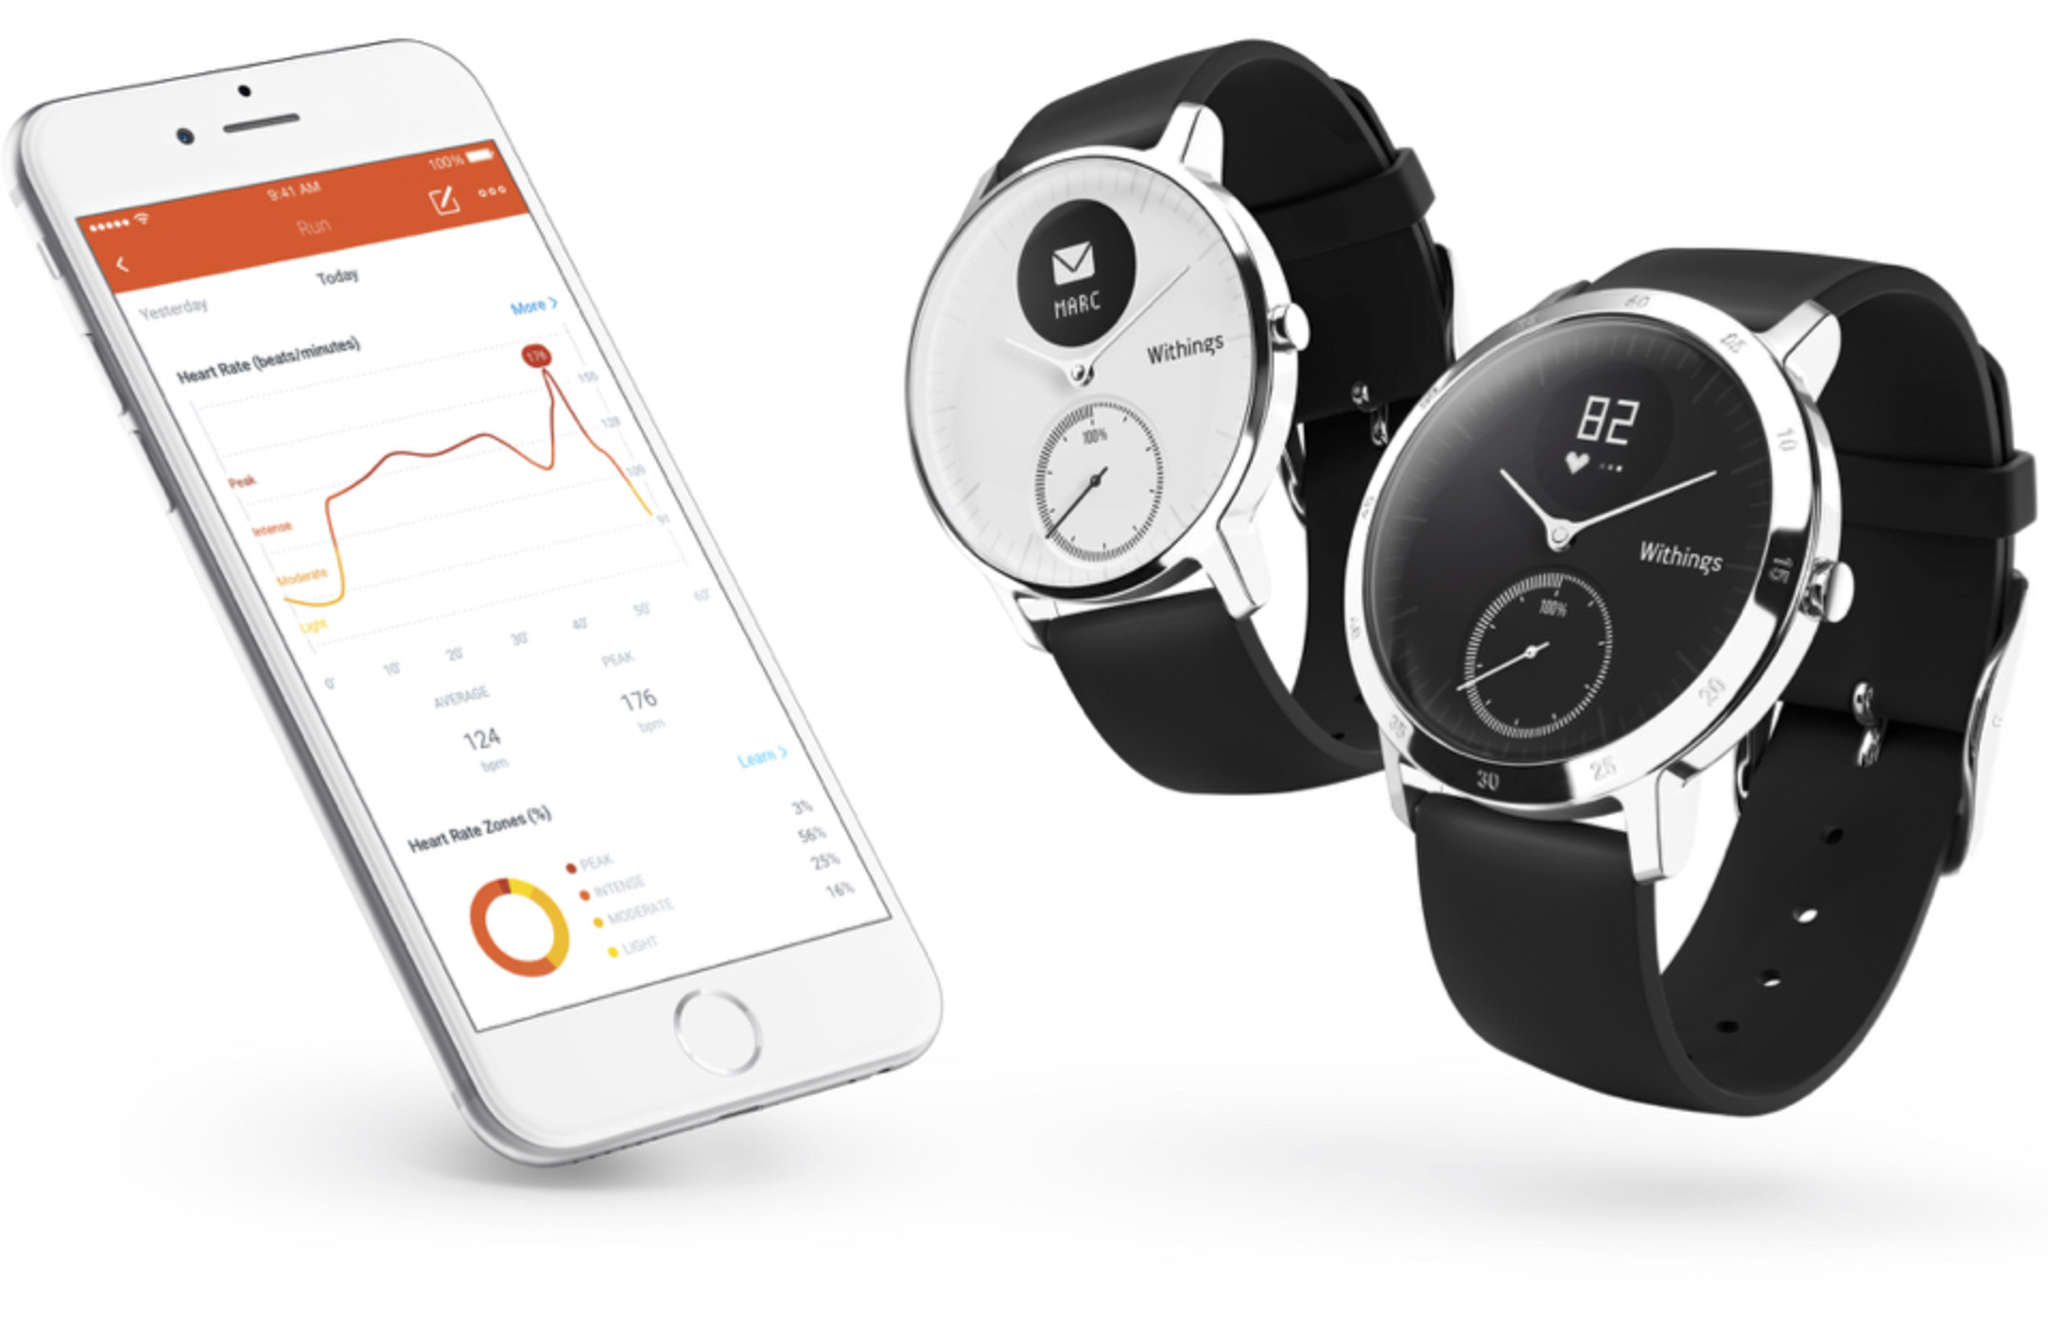 Smart watches that combine traditional styling with activity tracking and phone controls will be readily available as year-end gifts.